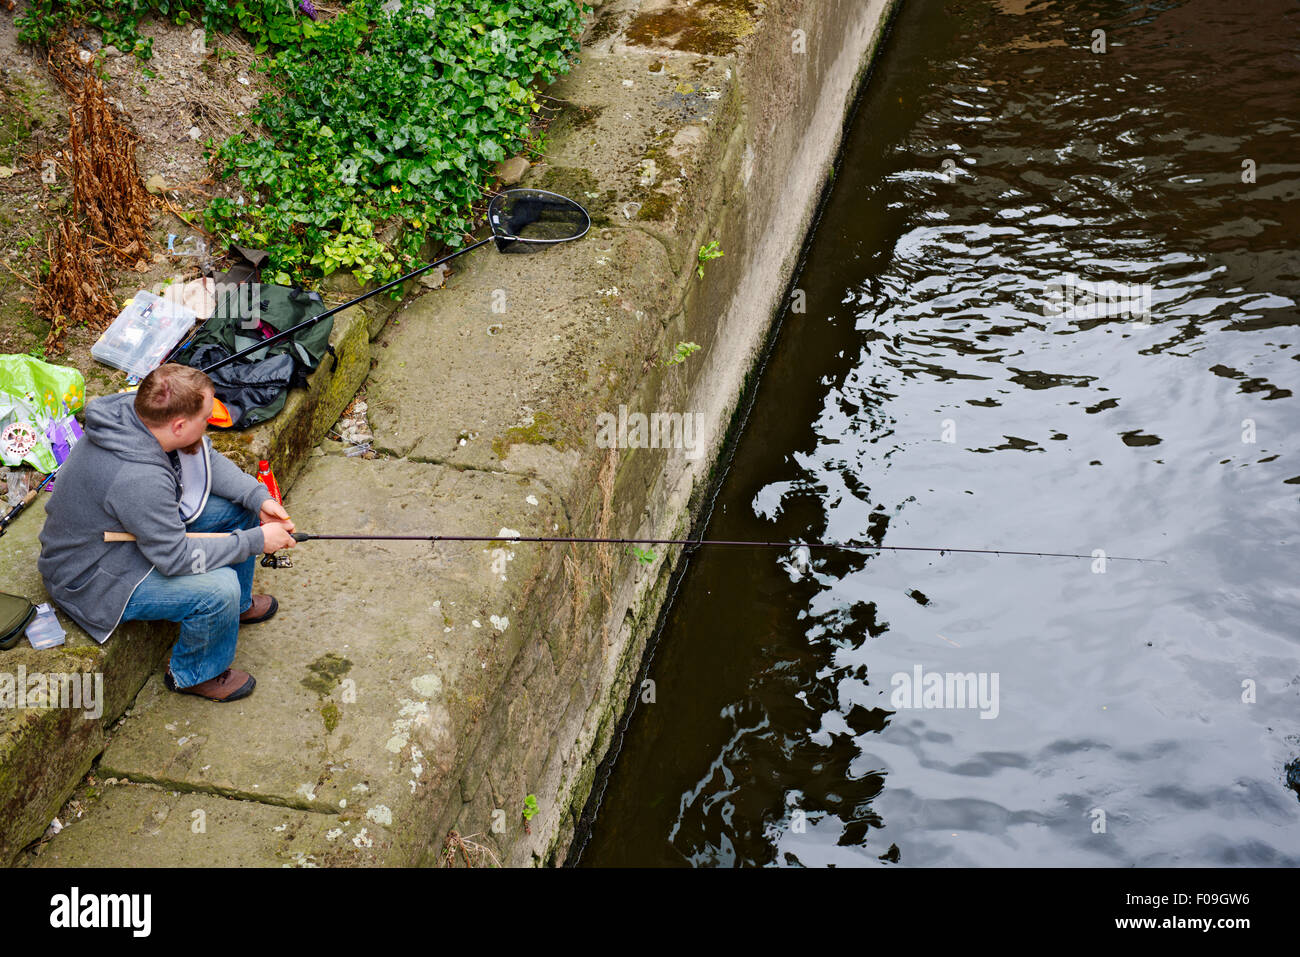 Man fishing in river Aire in central Leeds, West Yorkshire, UK - Stock Image